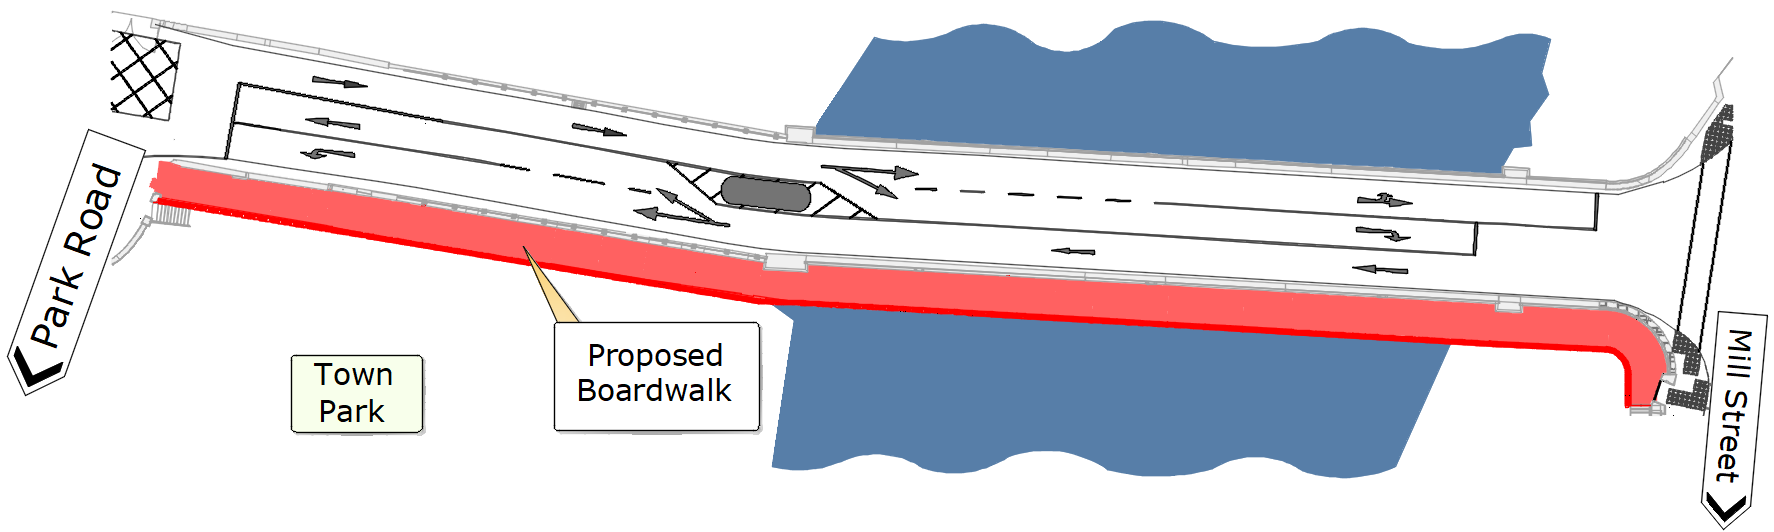 Proposed Layout Plan with Directions and River